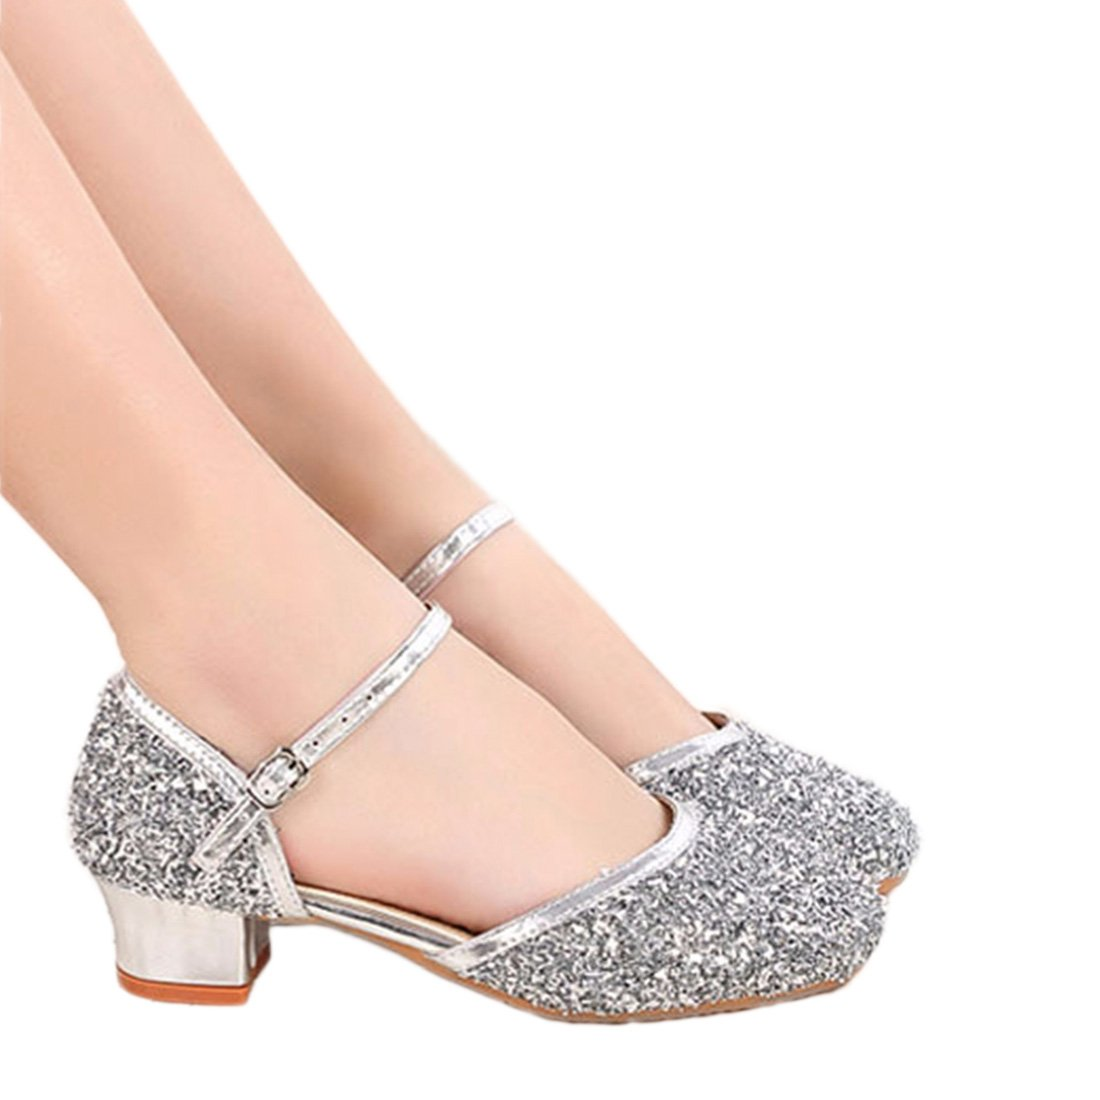 YIBLBOX Girls Kids Dress up Wedding Cosplay Princess Shoes Sparkling Sequins Mary Jane Crystal Low Heel Dress Shoes